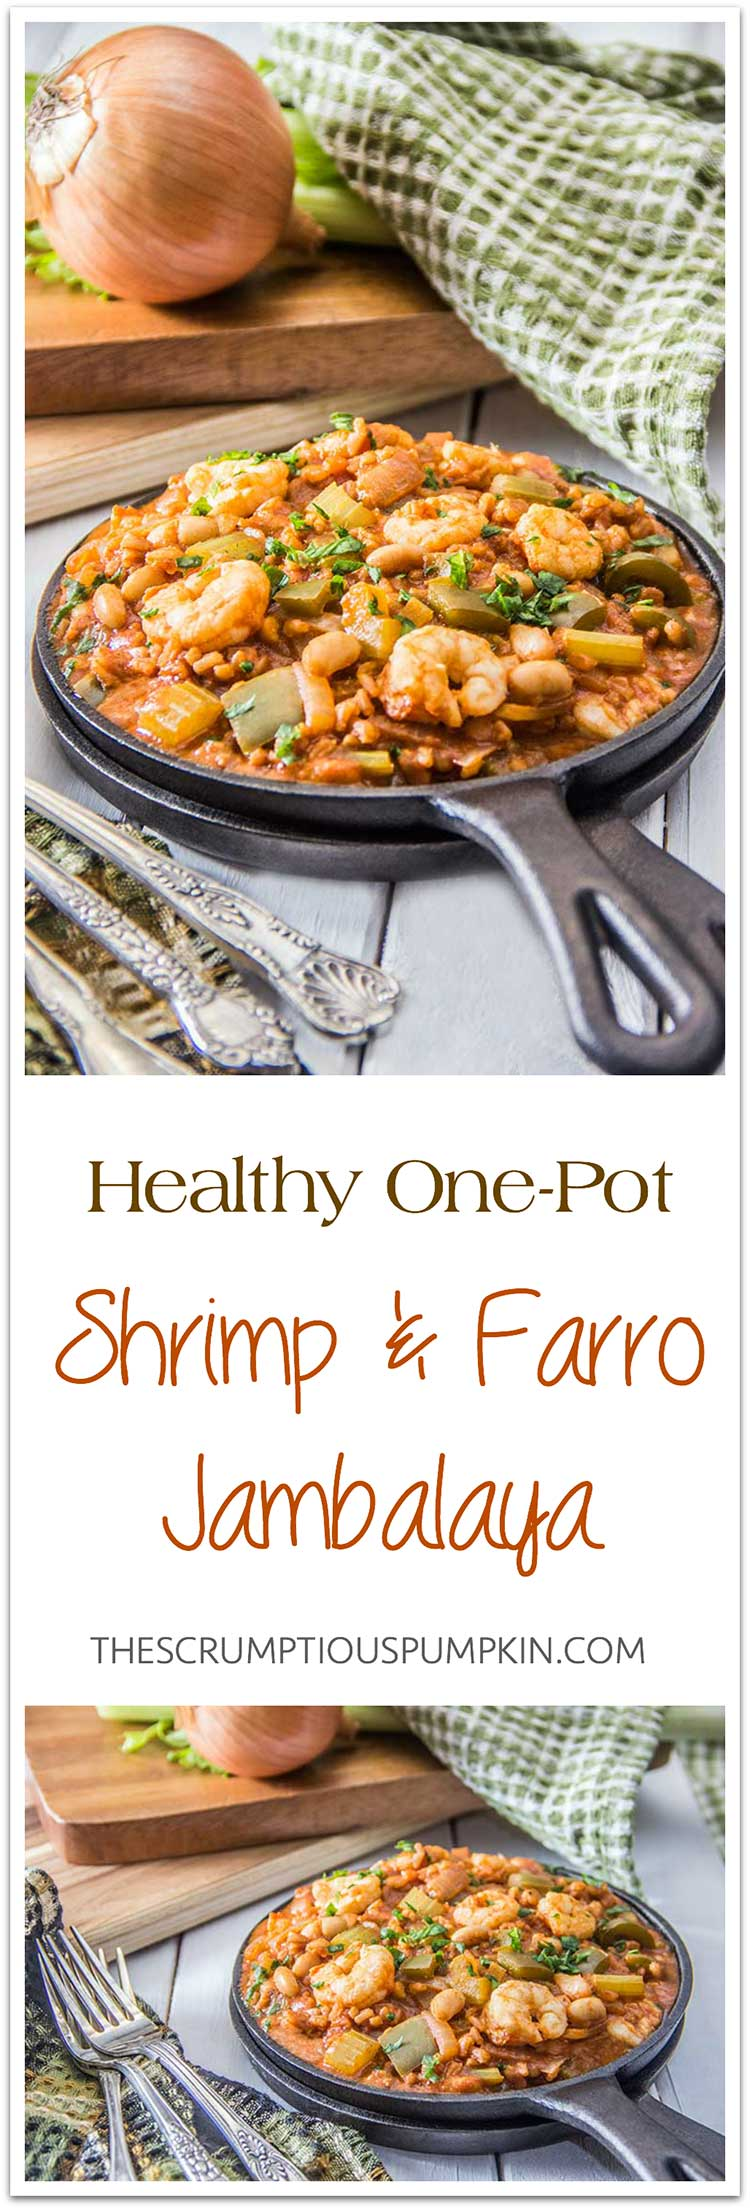 Healthy-One-Pot-Shrimp-White-Bean-Farro-Jambalaya